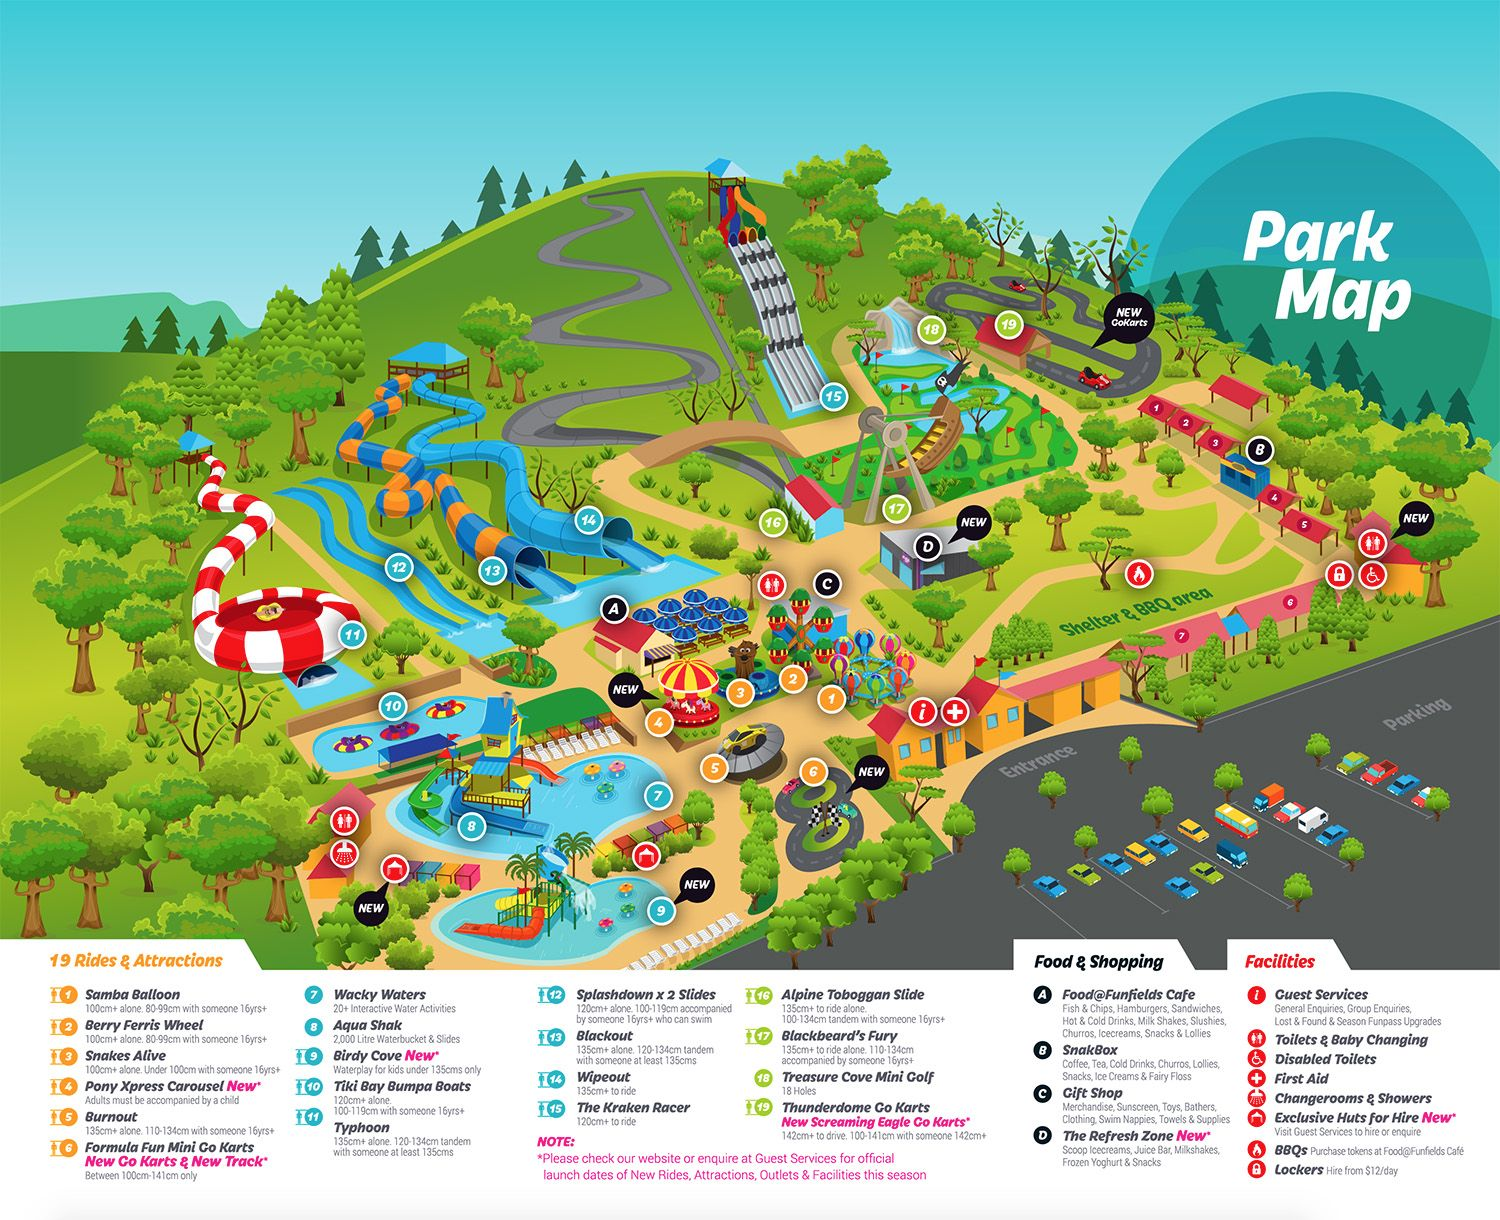 Funfields Park Map | Amut Park | Park, Map on six flags over georgia park map 2013, kennywood park map 2013, holiday world park map 2013,